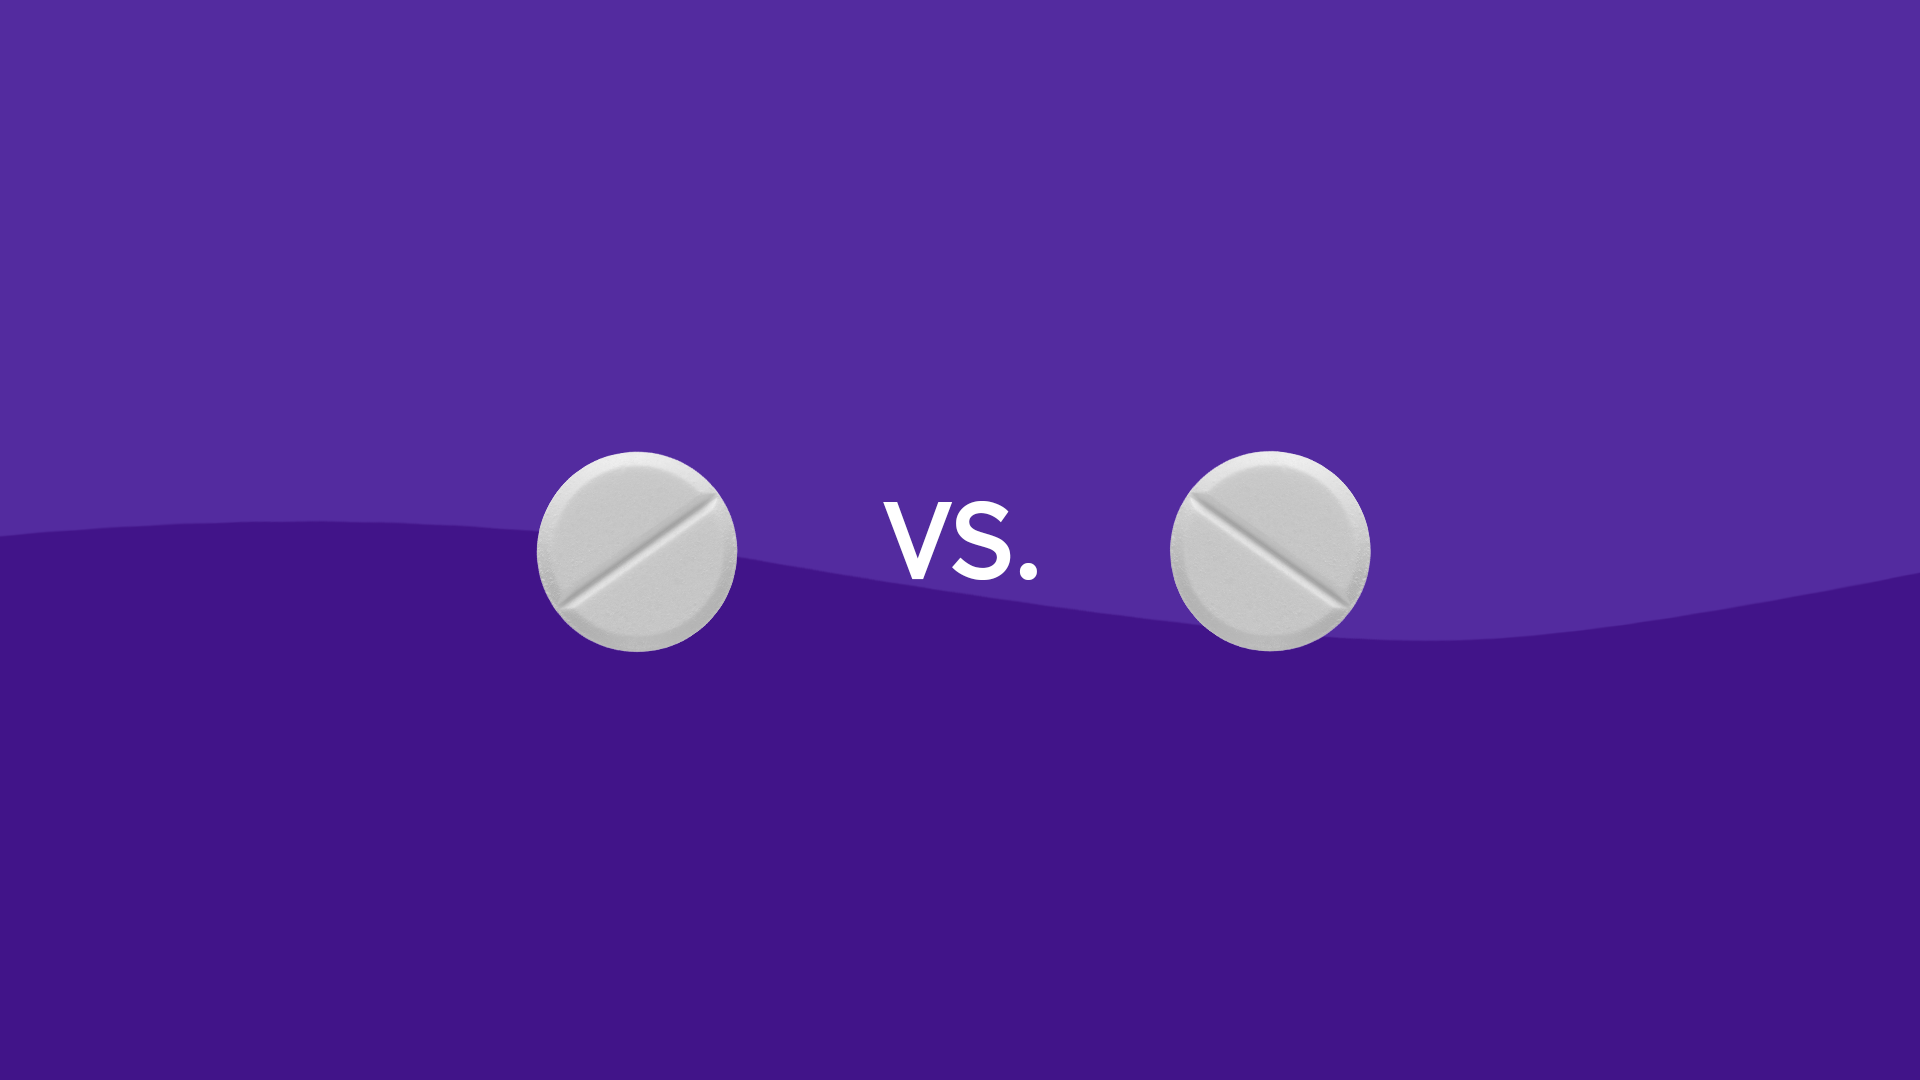 Celexa vs. Lexapro: Differences, similarities, and which is better for you